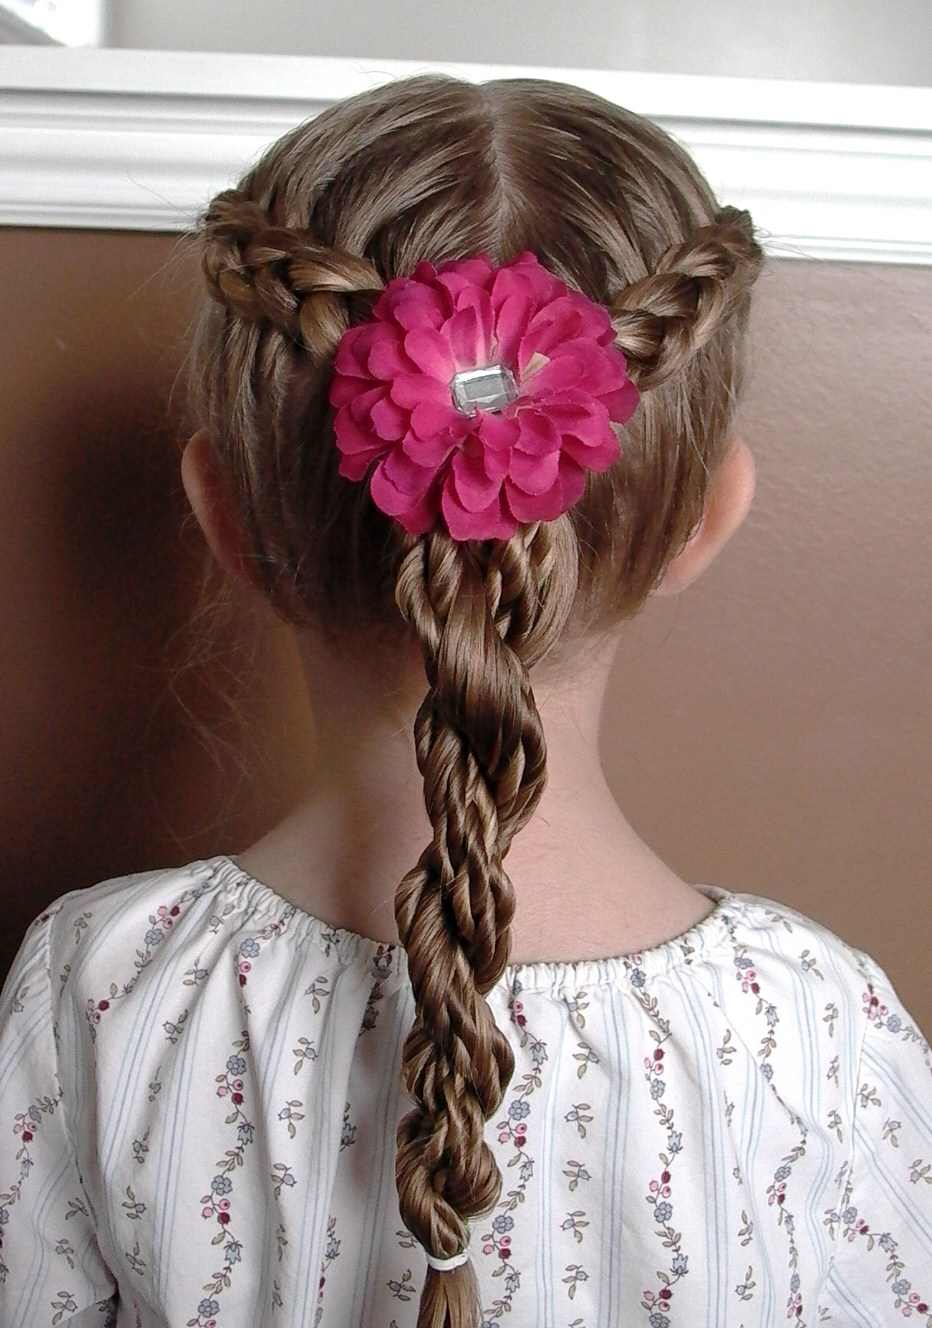 Braid Hairstyles For Lil Girls Flooring Ideas Home